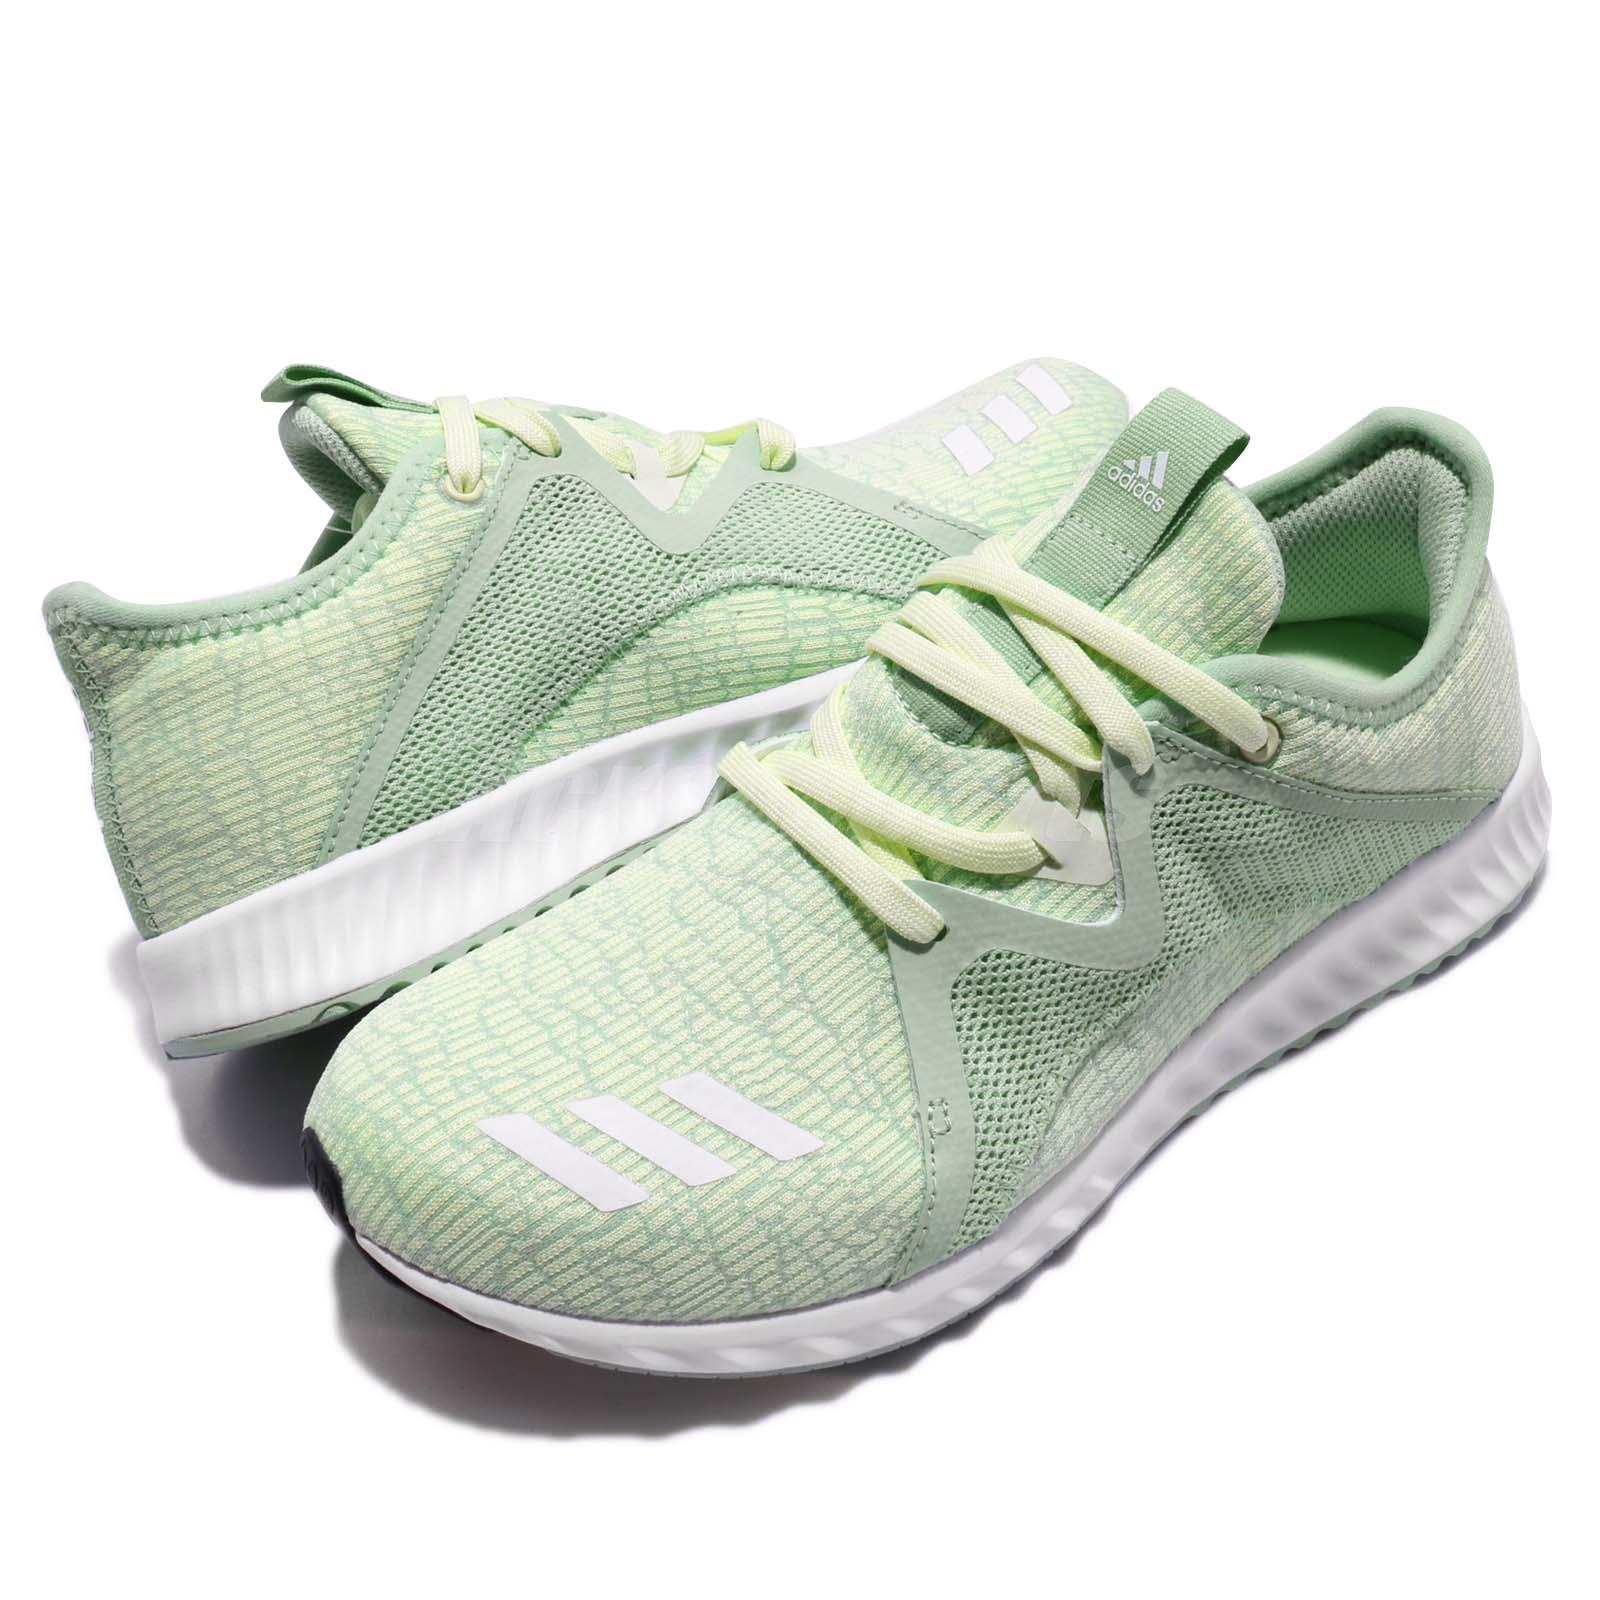 1a870be87d Details about adidas Edge Lux 2 W II Green White Women Running Athletic  Shoes Sneakers CQ1643